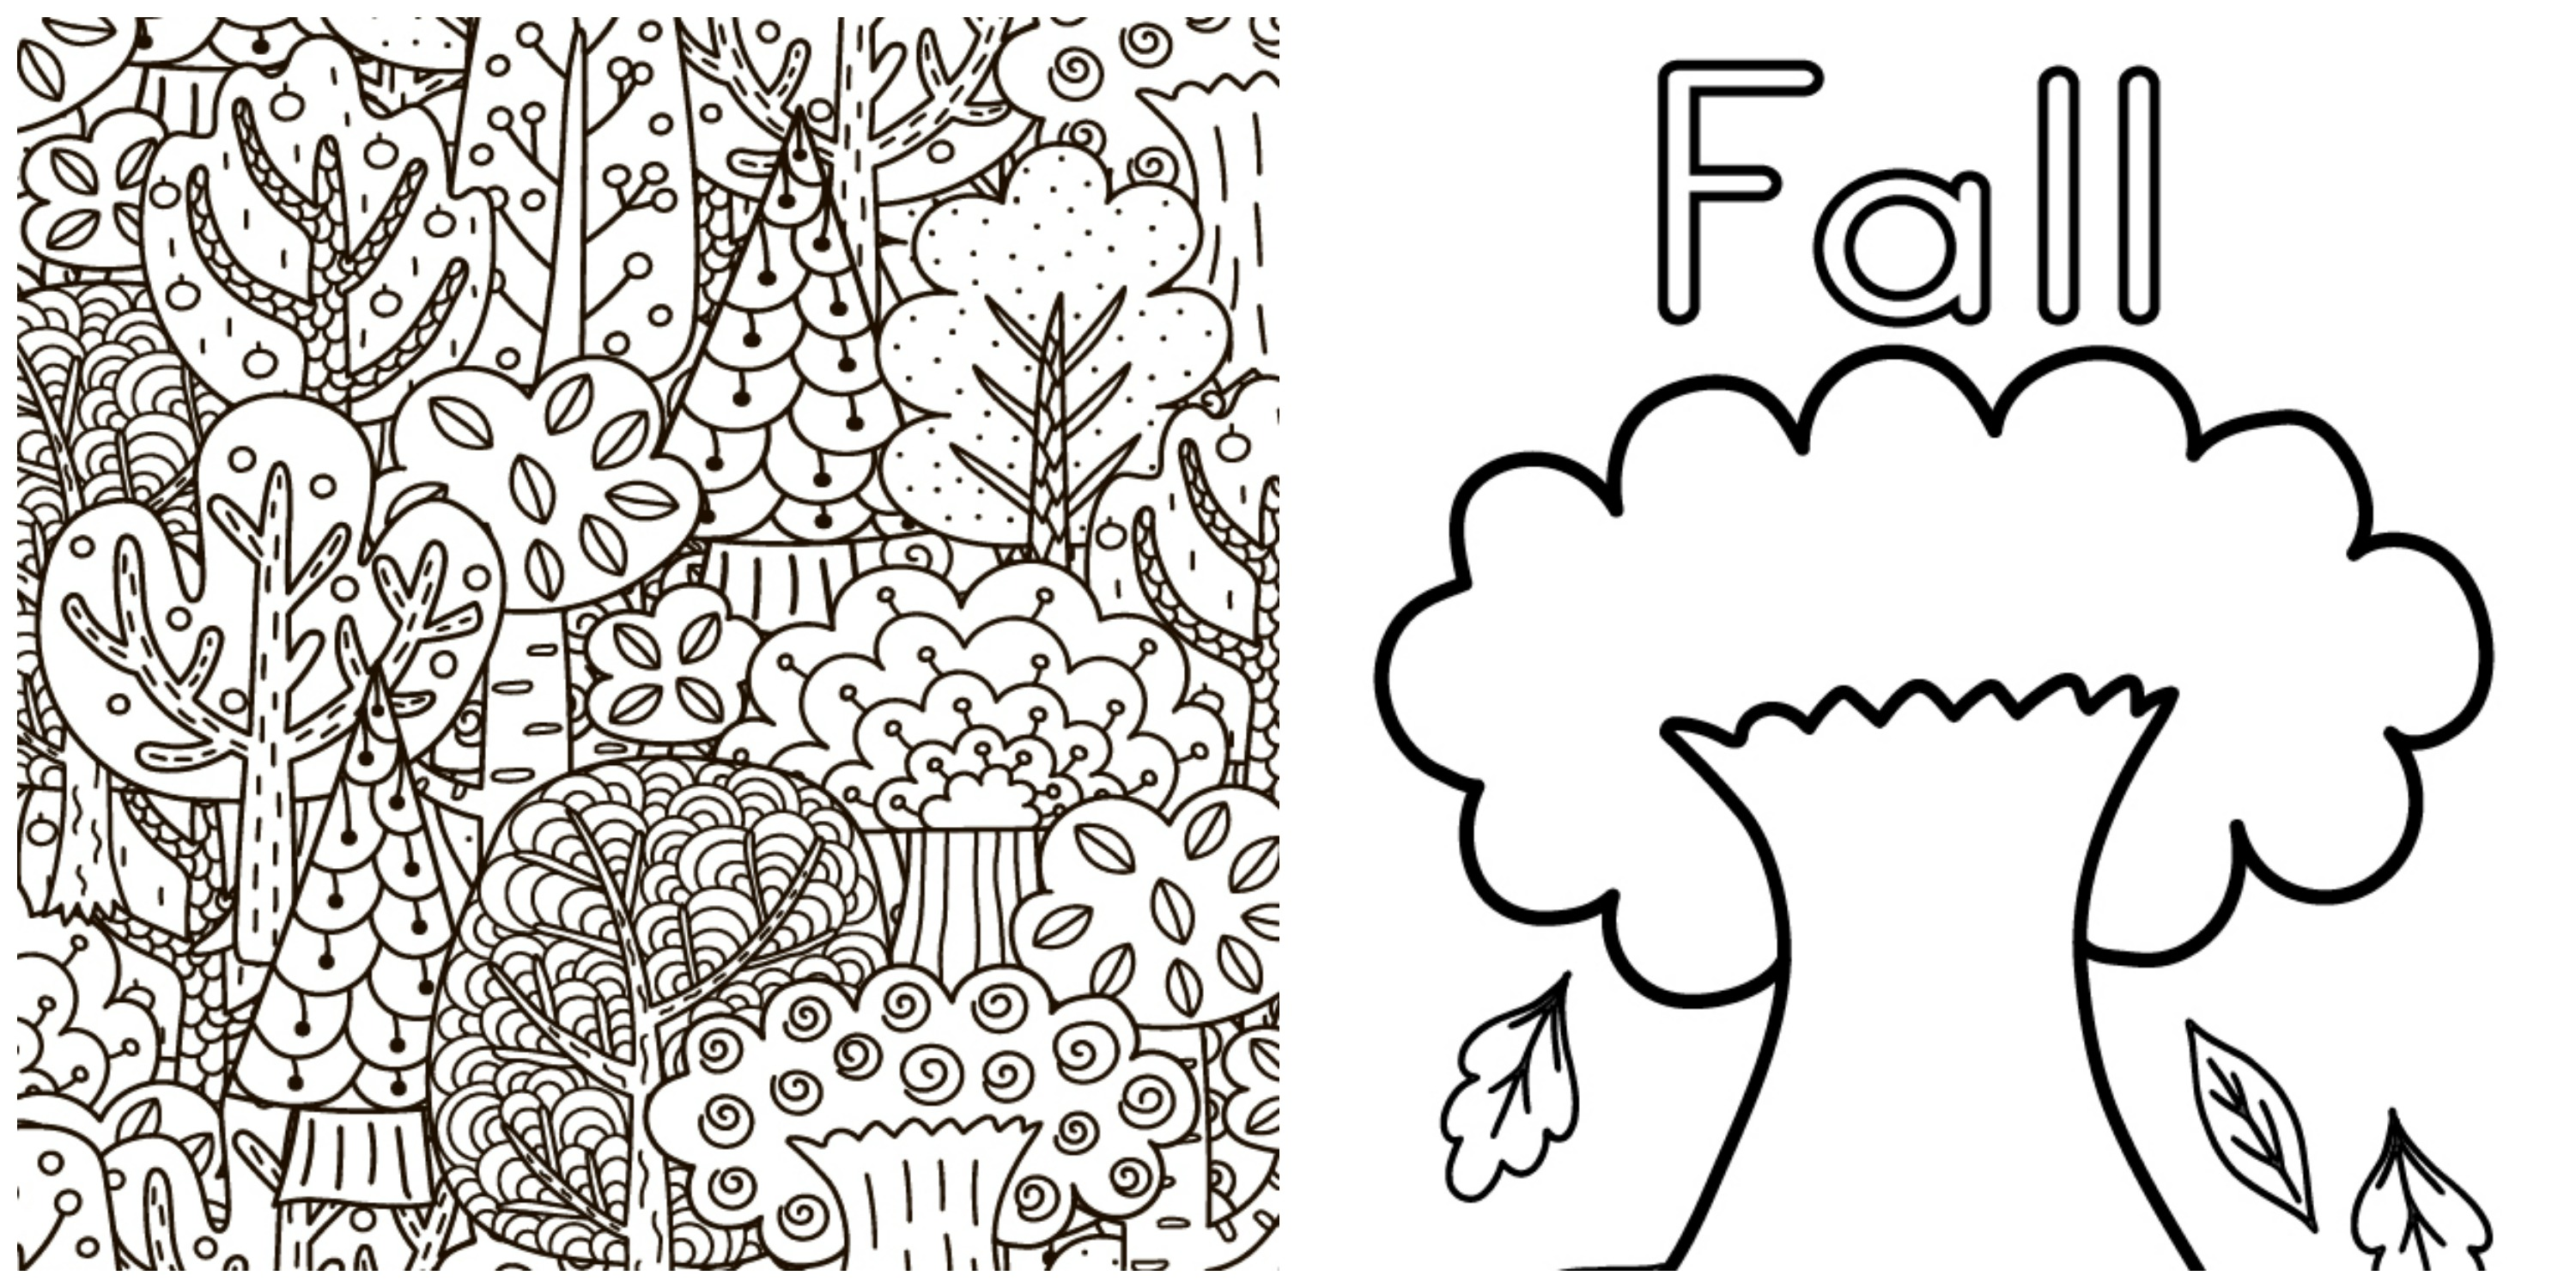 Download your Fall Coloring Sheets here!